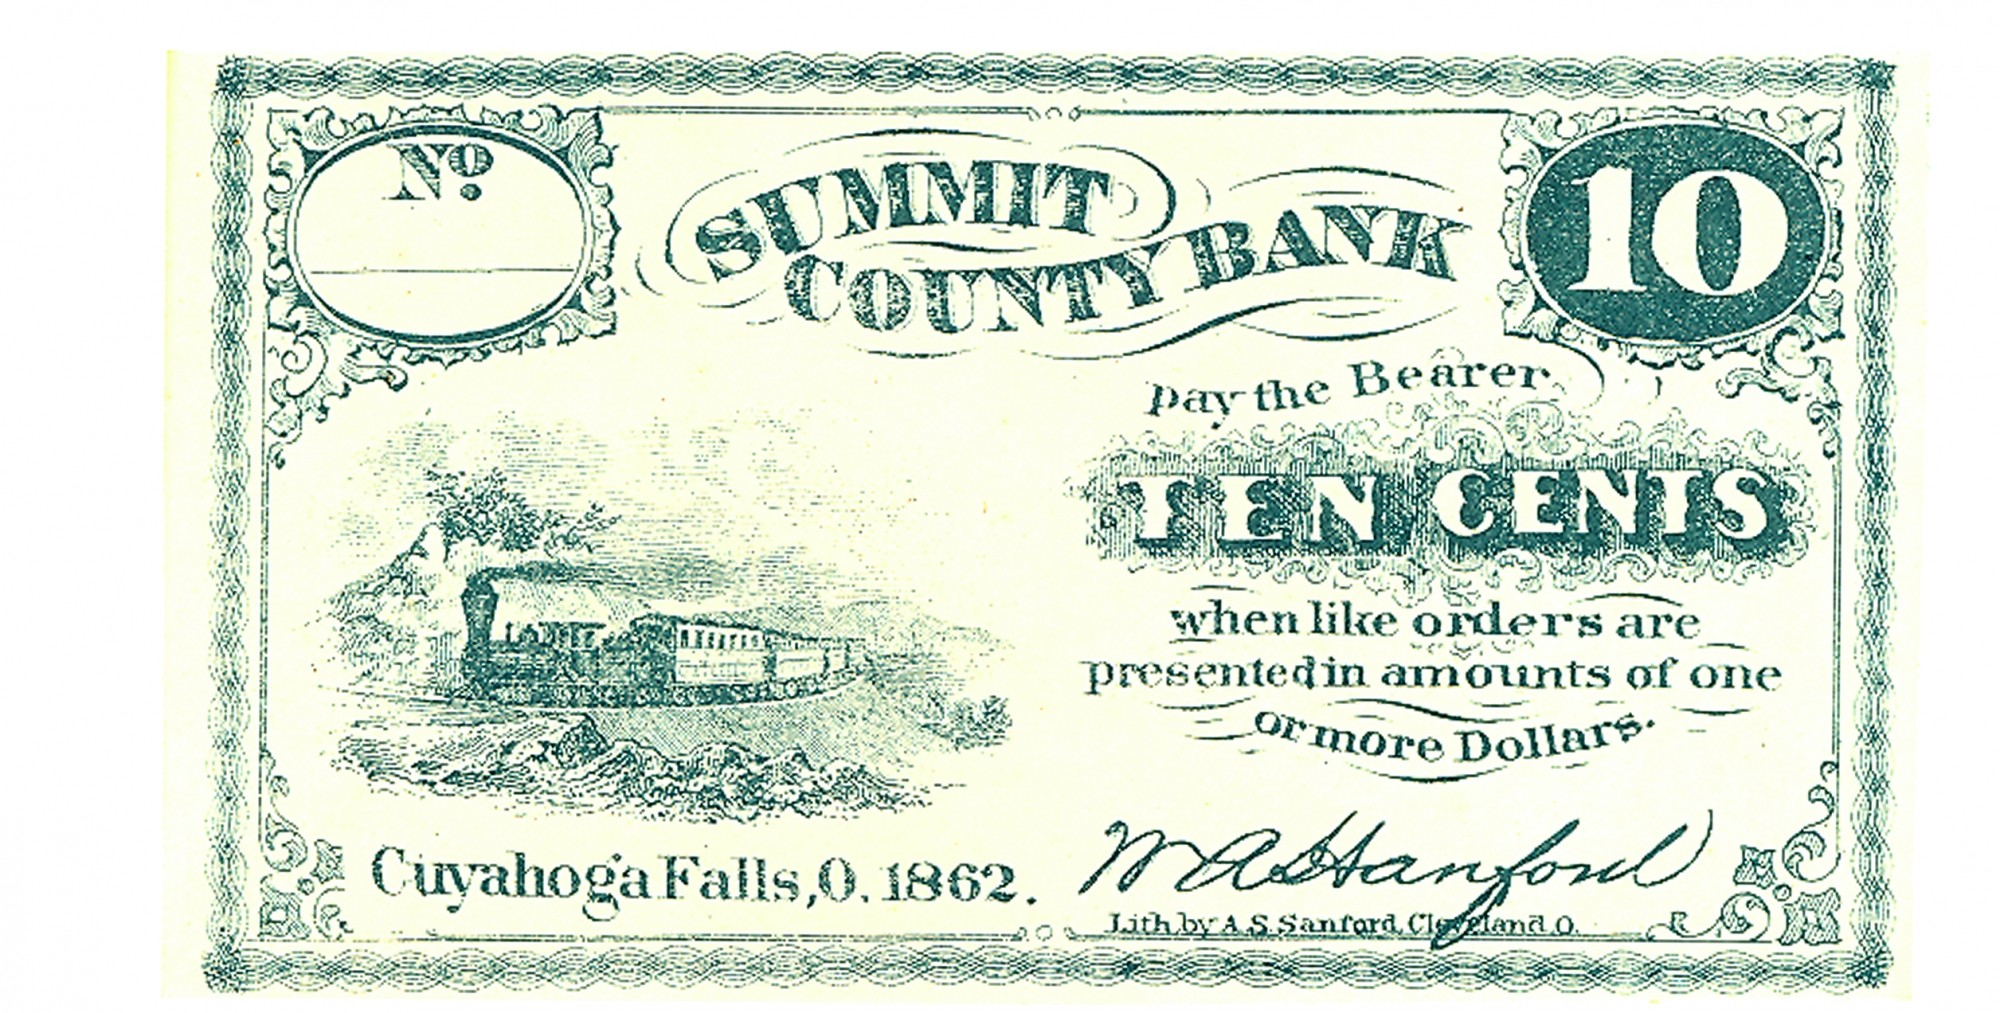 THE SUMMIT COUNTY BANK, OHIO, $.10 NOTE